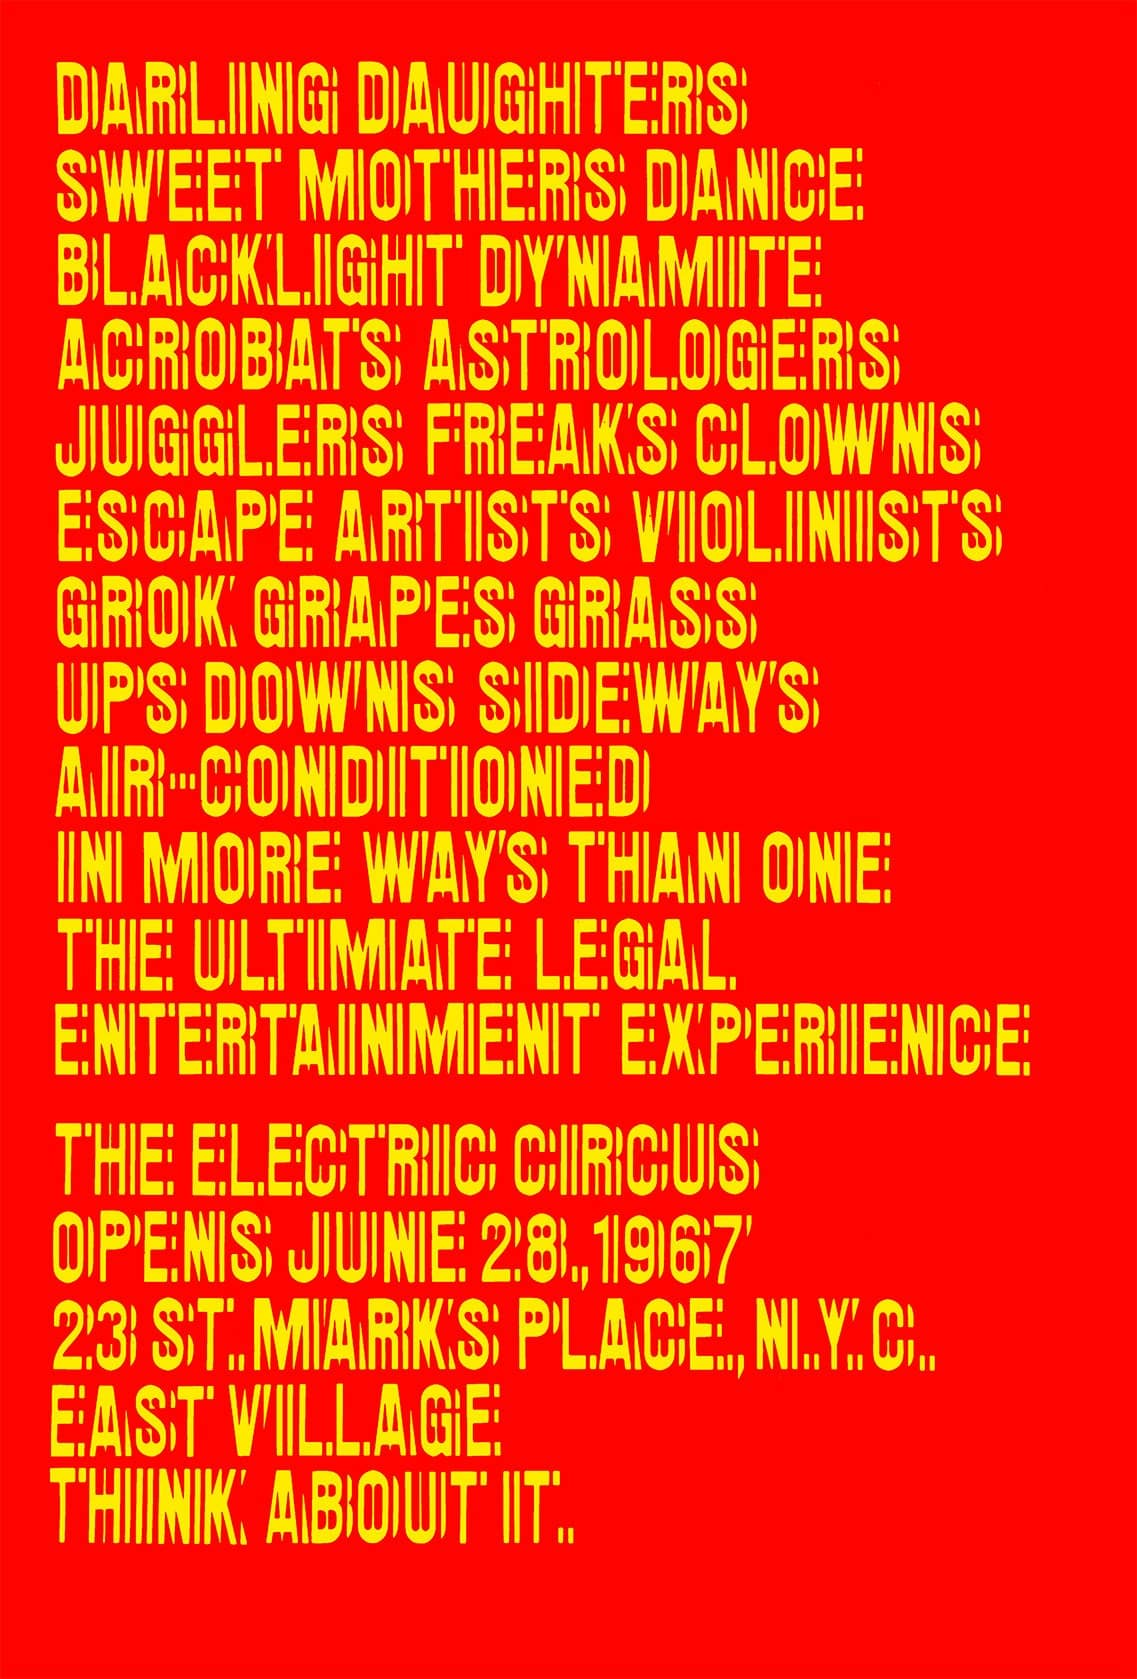 Night-Fever-at-Vitra-Design-Museum_Electric-Circus-poster-1967_Credit-design-by-Oliver-Munday--Ivan-Chermayeff--Tom Geismar_1137